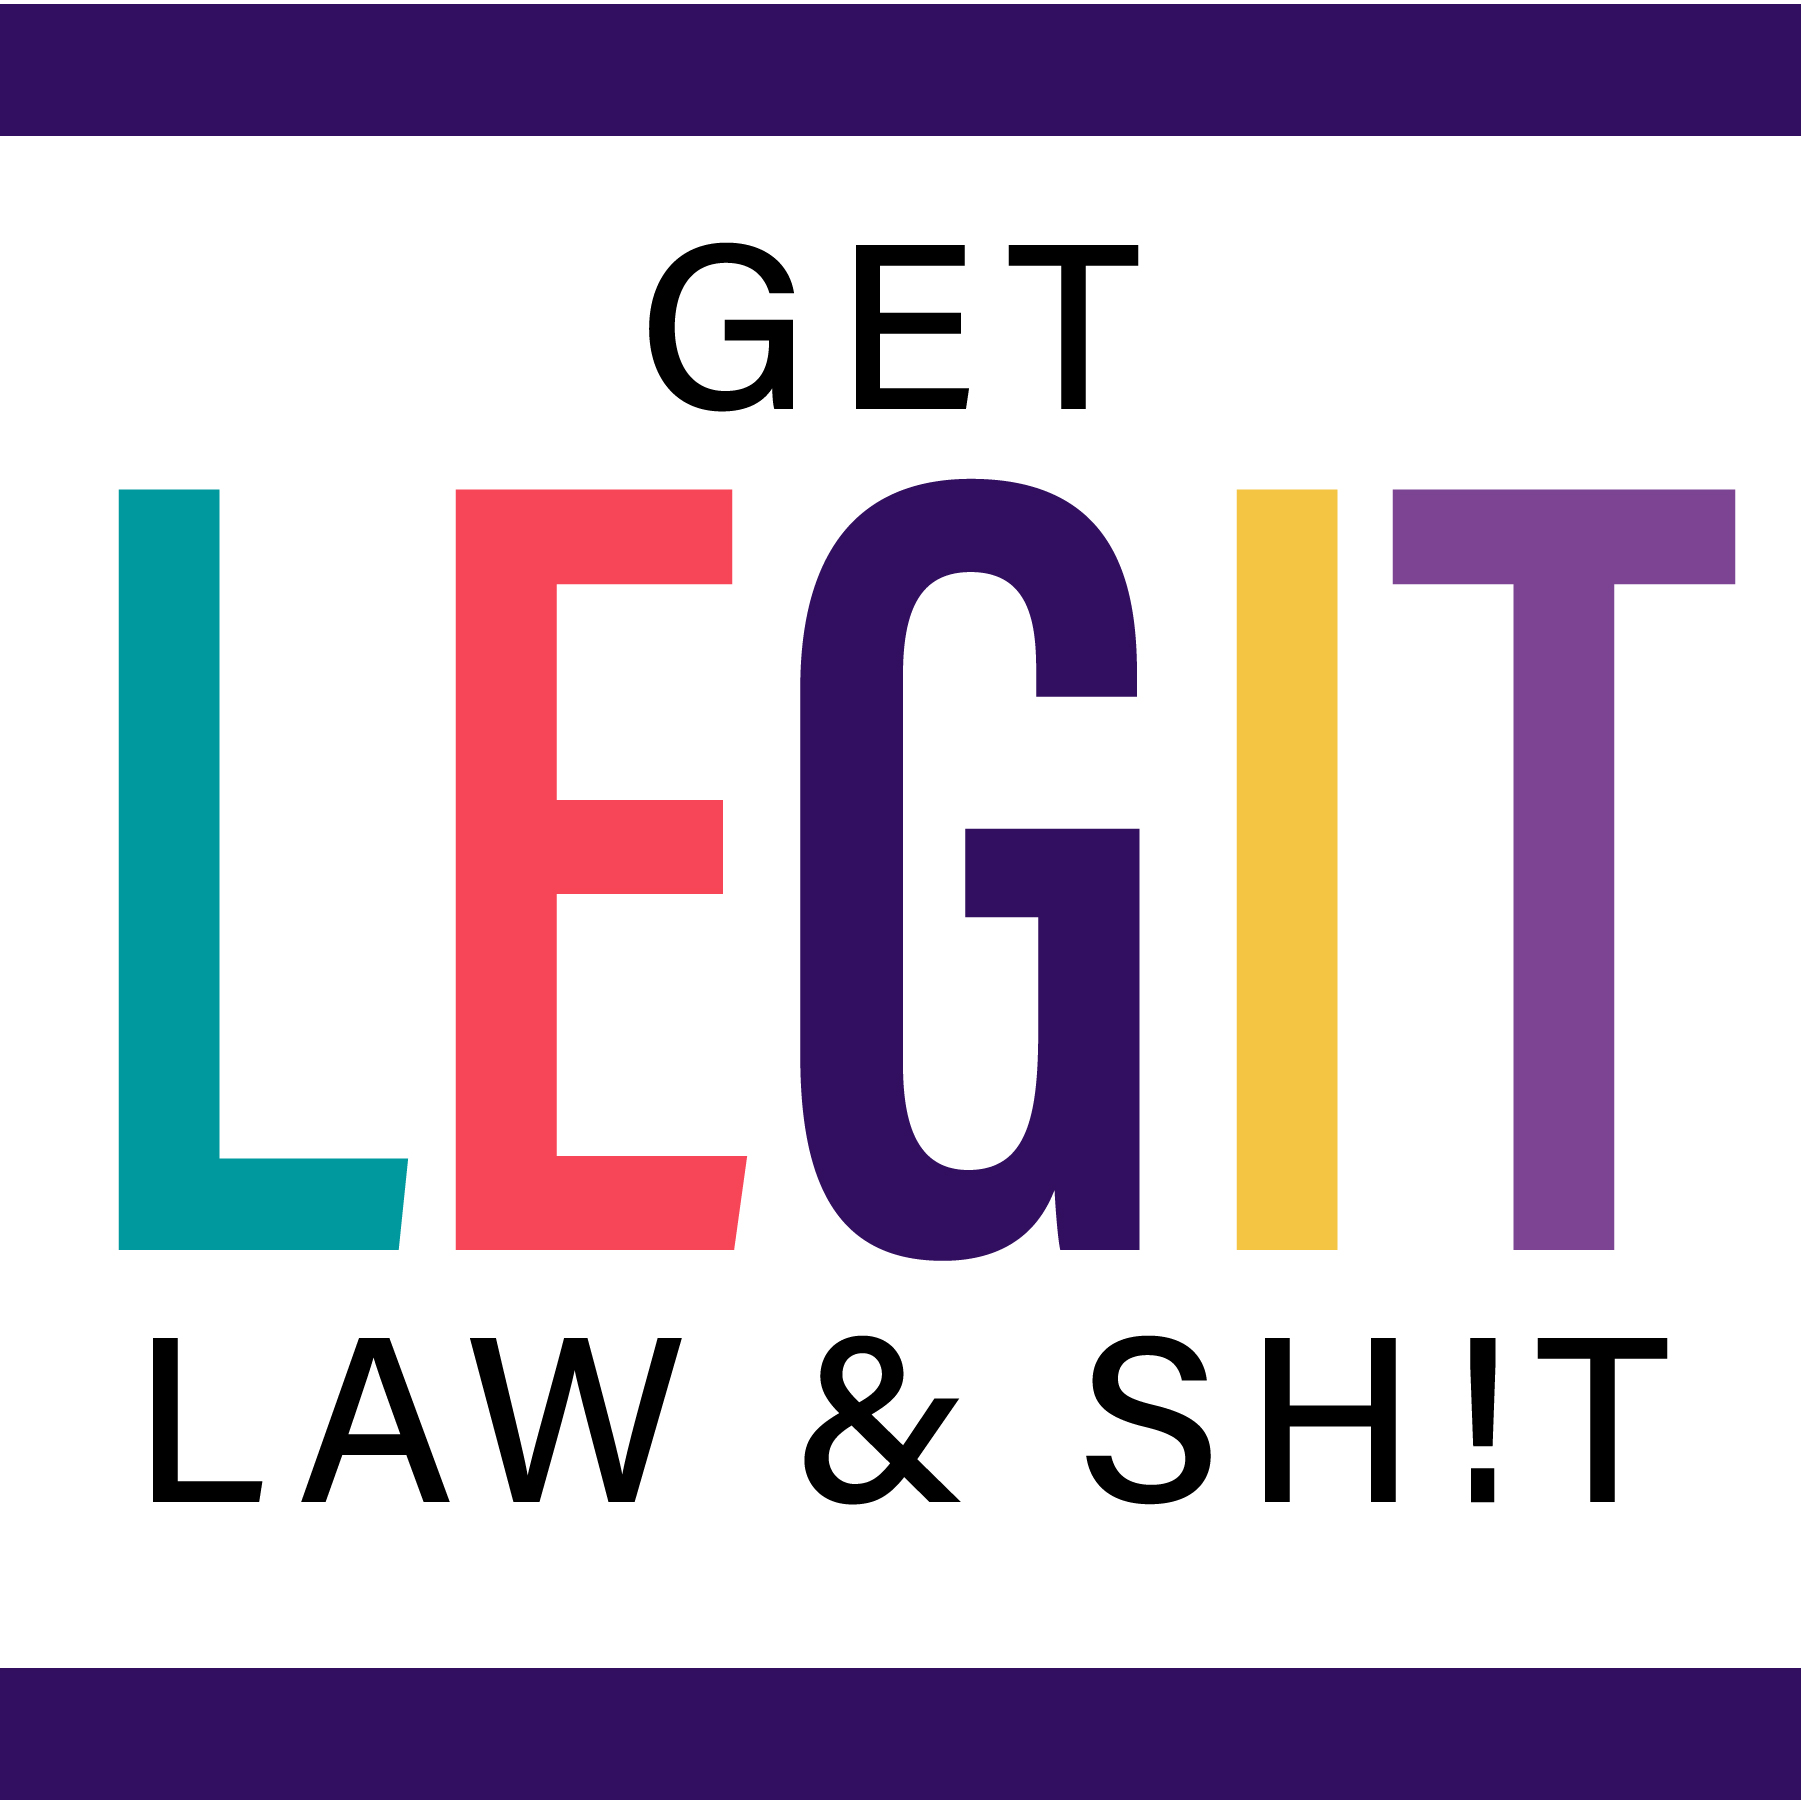 Show artwork for Get Legit Law & Sh!t